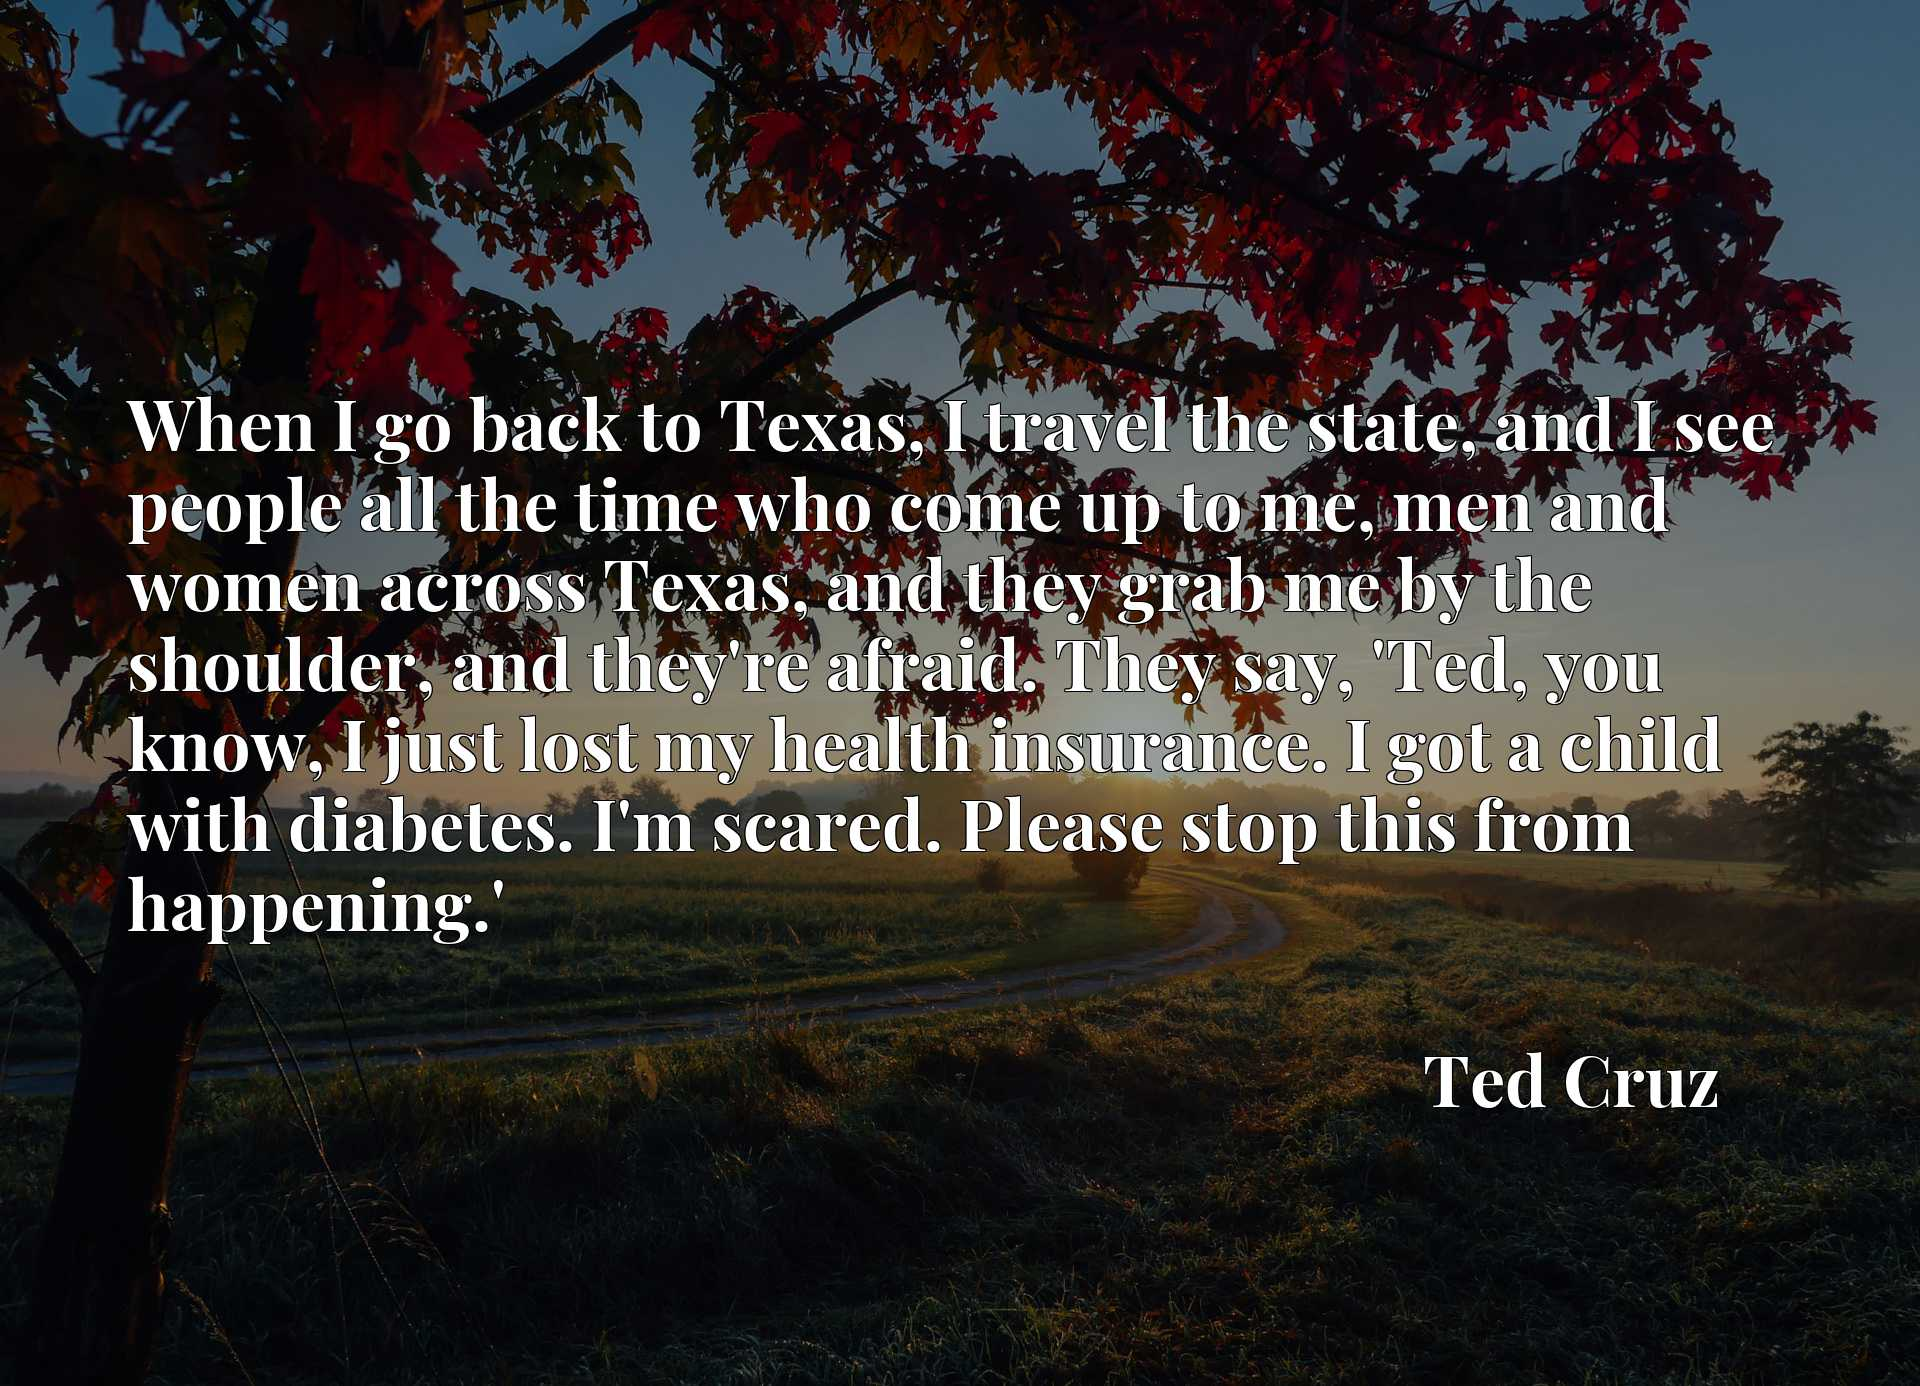 When I go back to Texas, I travel the state, and I see people all the time who come up to me, men and women across Texas, and they grab me by the shoulder, and they're afraid. They say, 'Ted, you know, I just lost my health insurance. I got a child with diabetes. I'm scared. Please stop this from happening.'